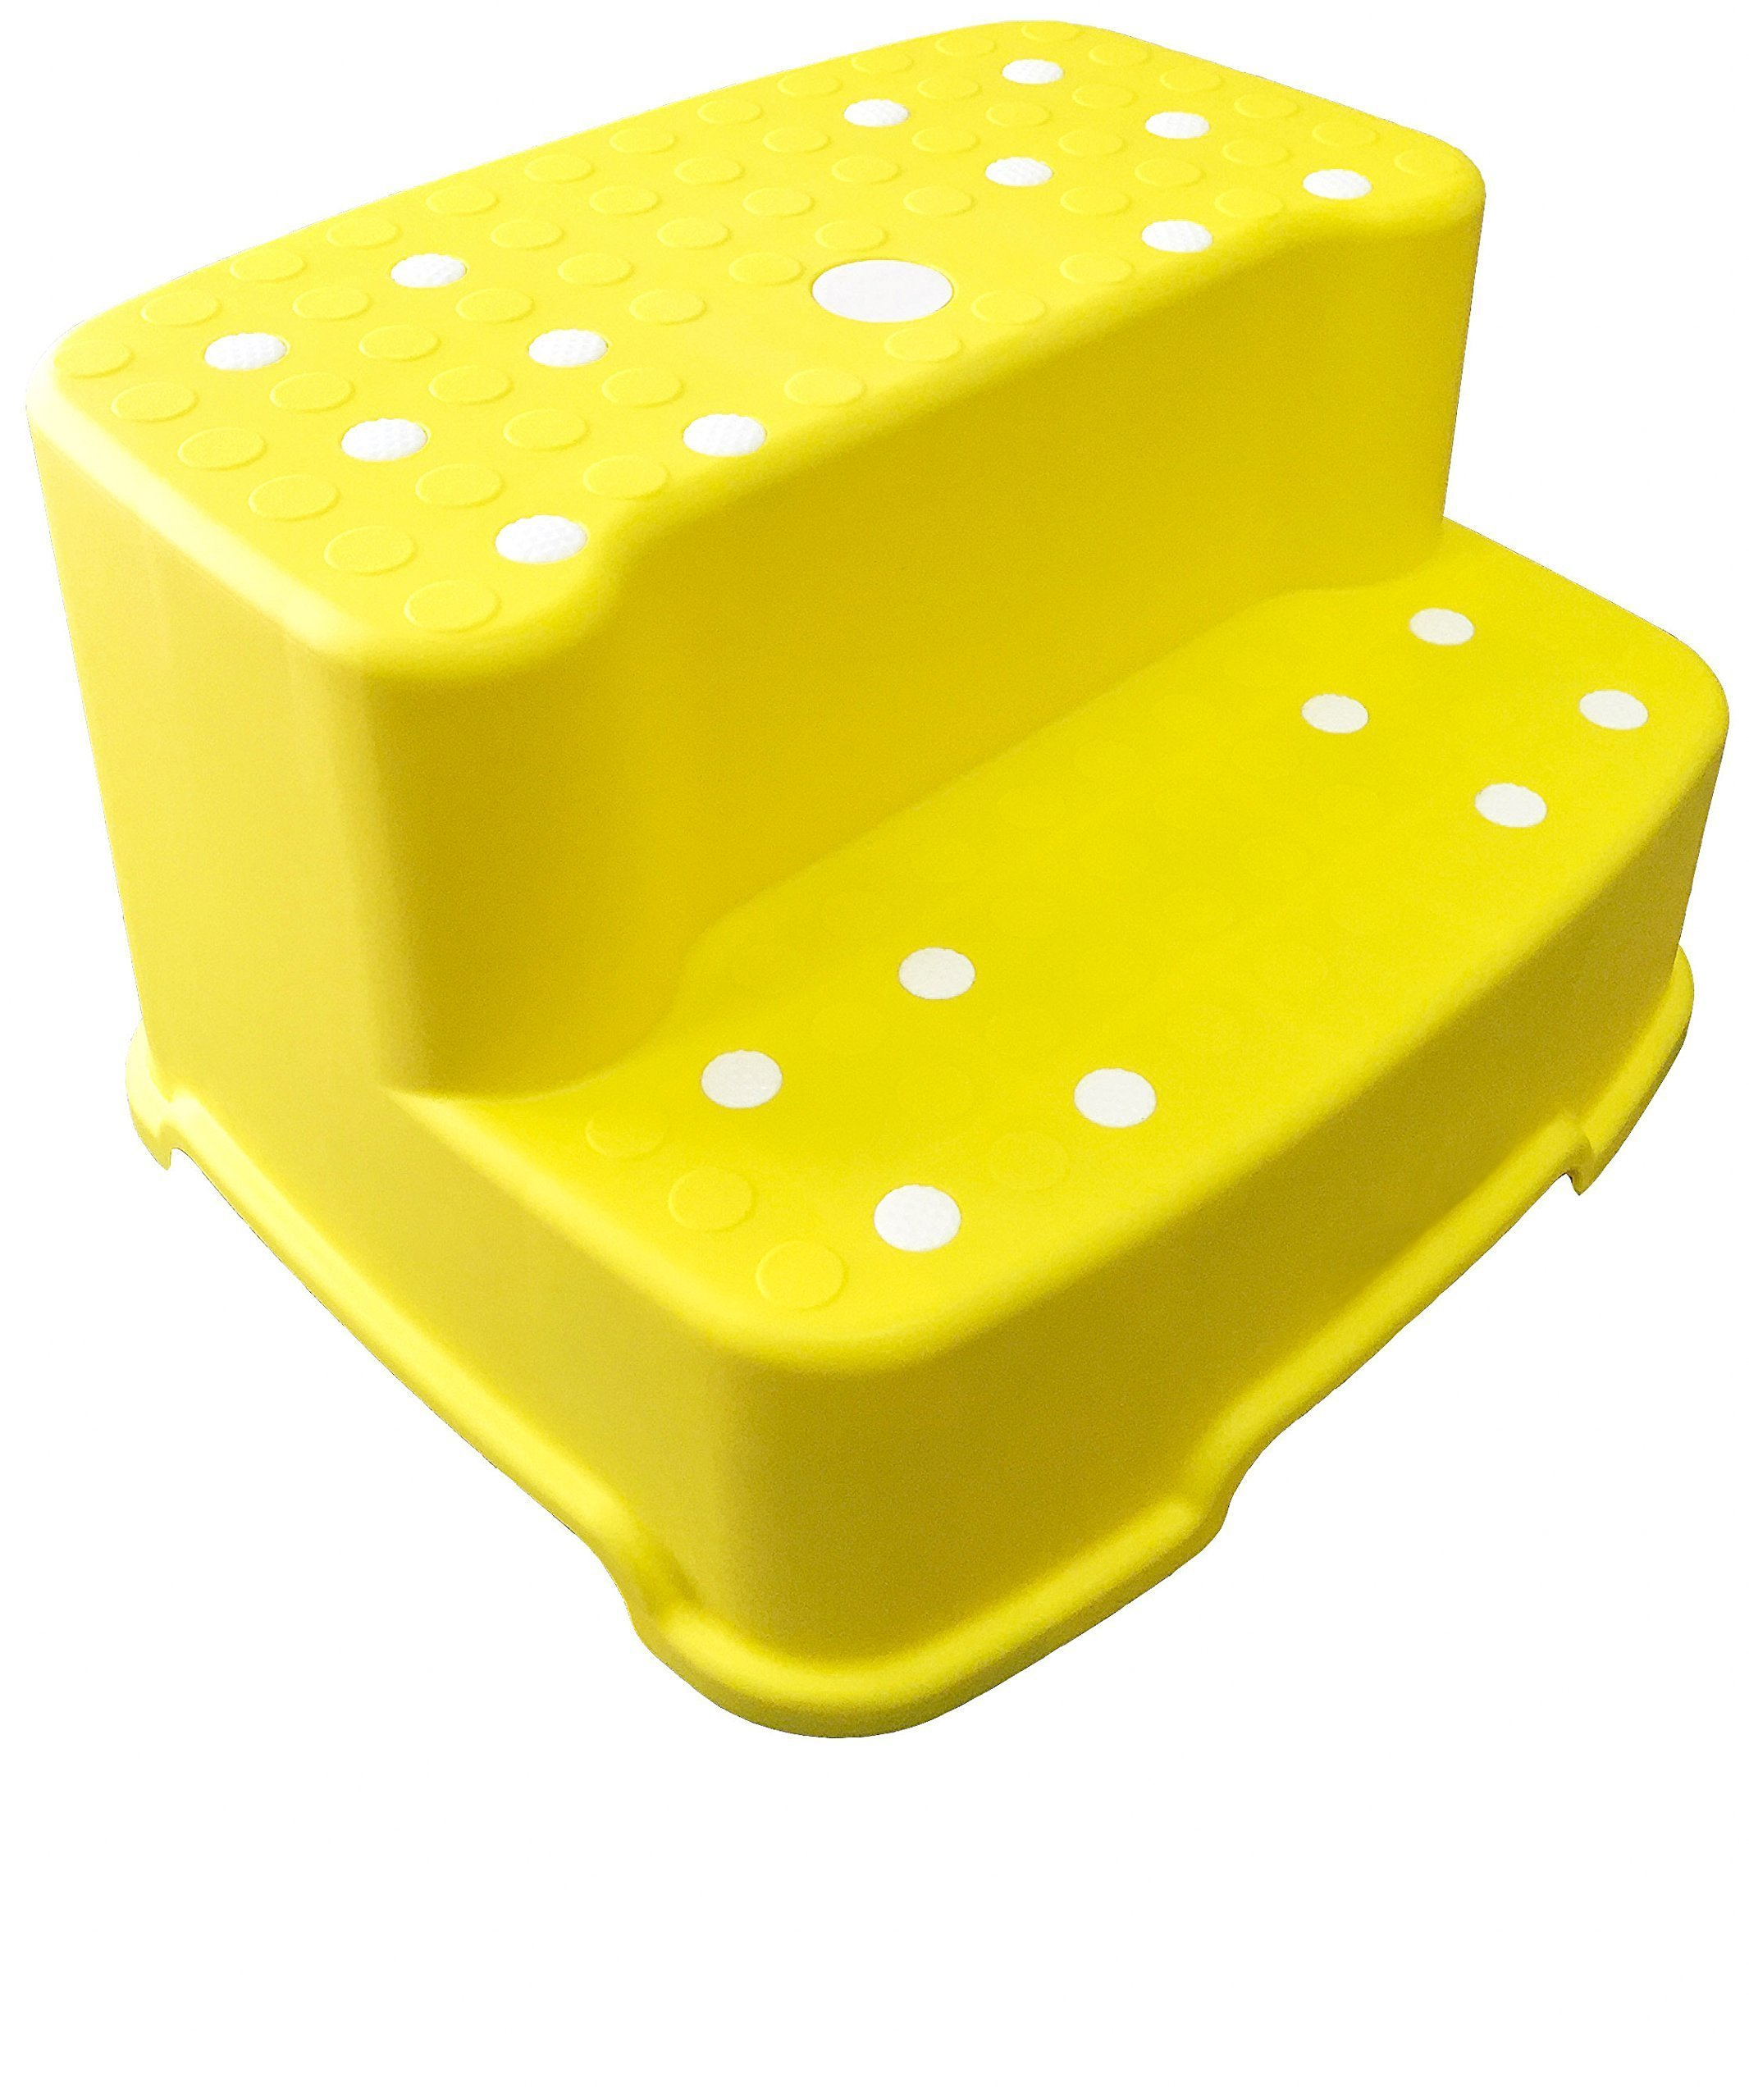 Tenby Living Extra-Wide Extra-Tall Jumbo Step Stool with Removable Non-Slip Caps and Rubber Grips, Yellow